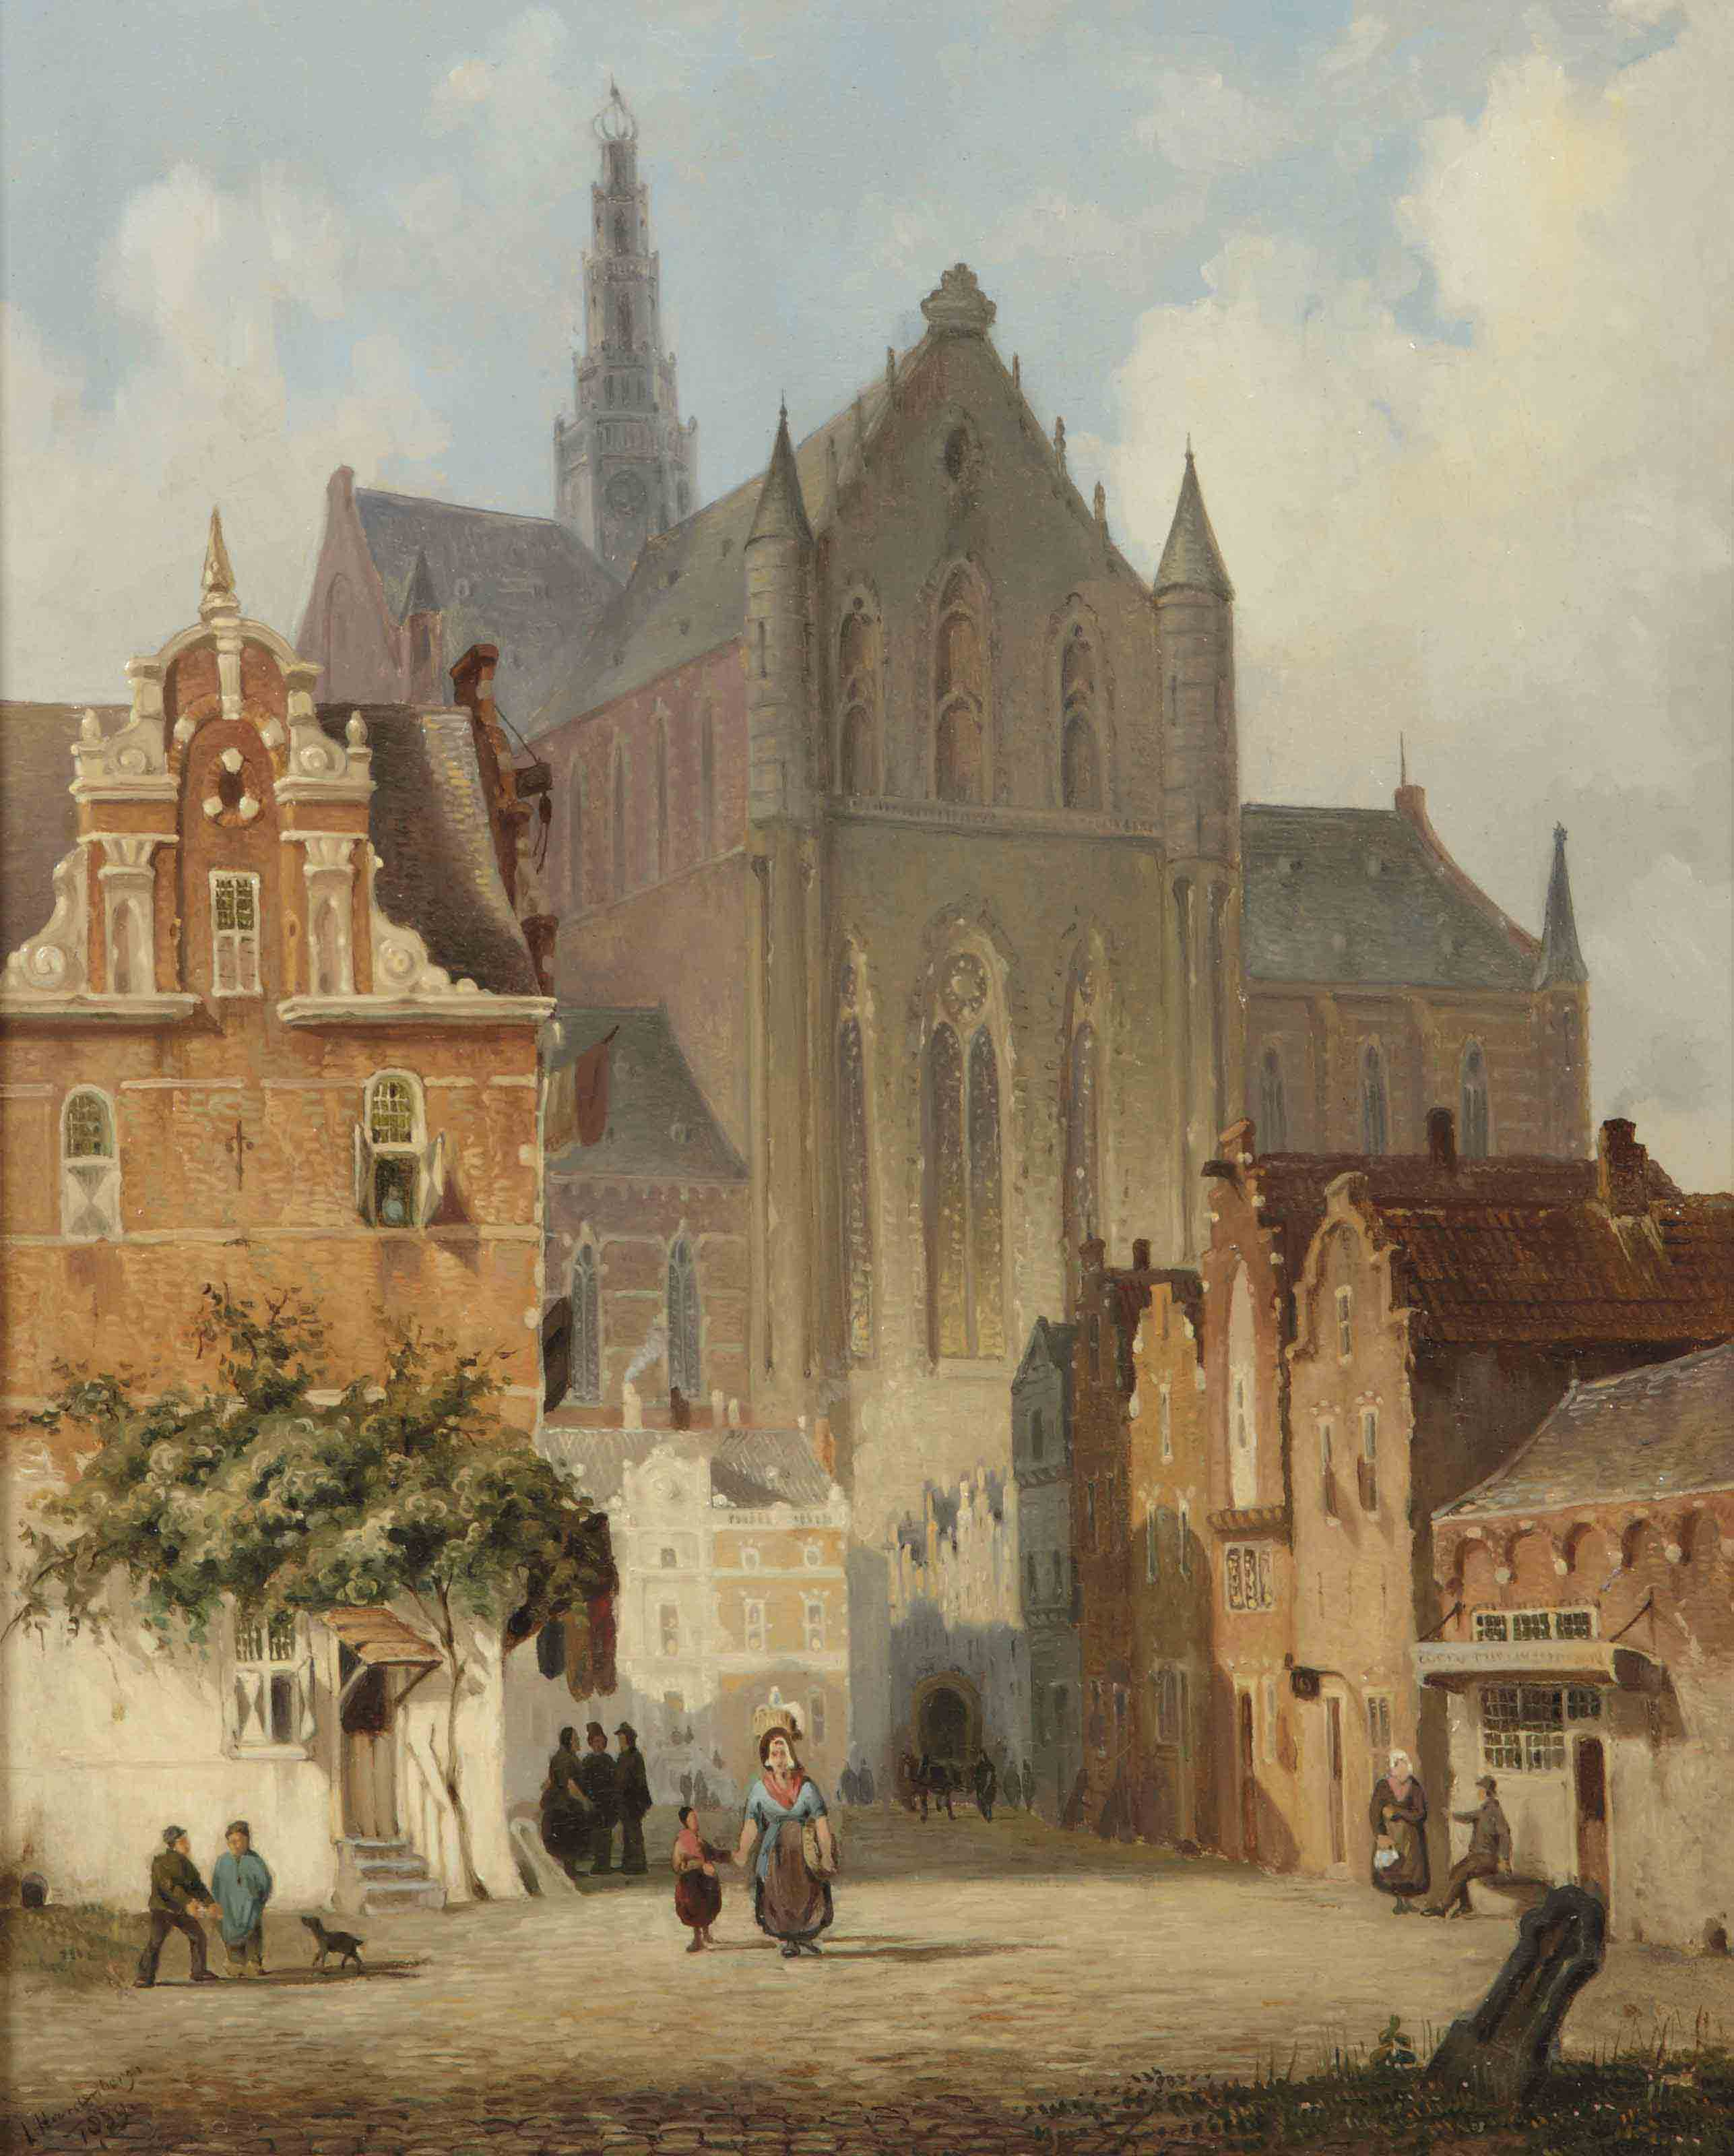 Figures on the Grote Markt in Haarlem with the Saint Bavo church